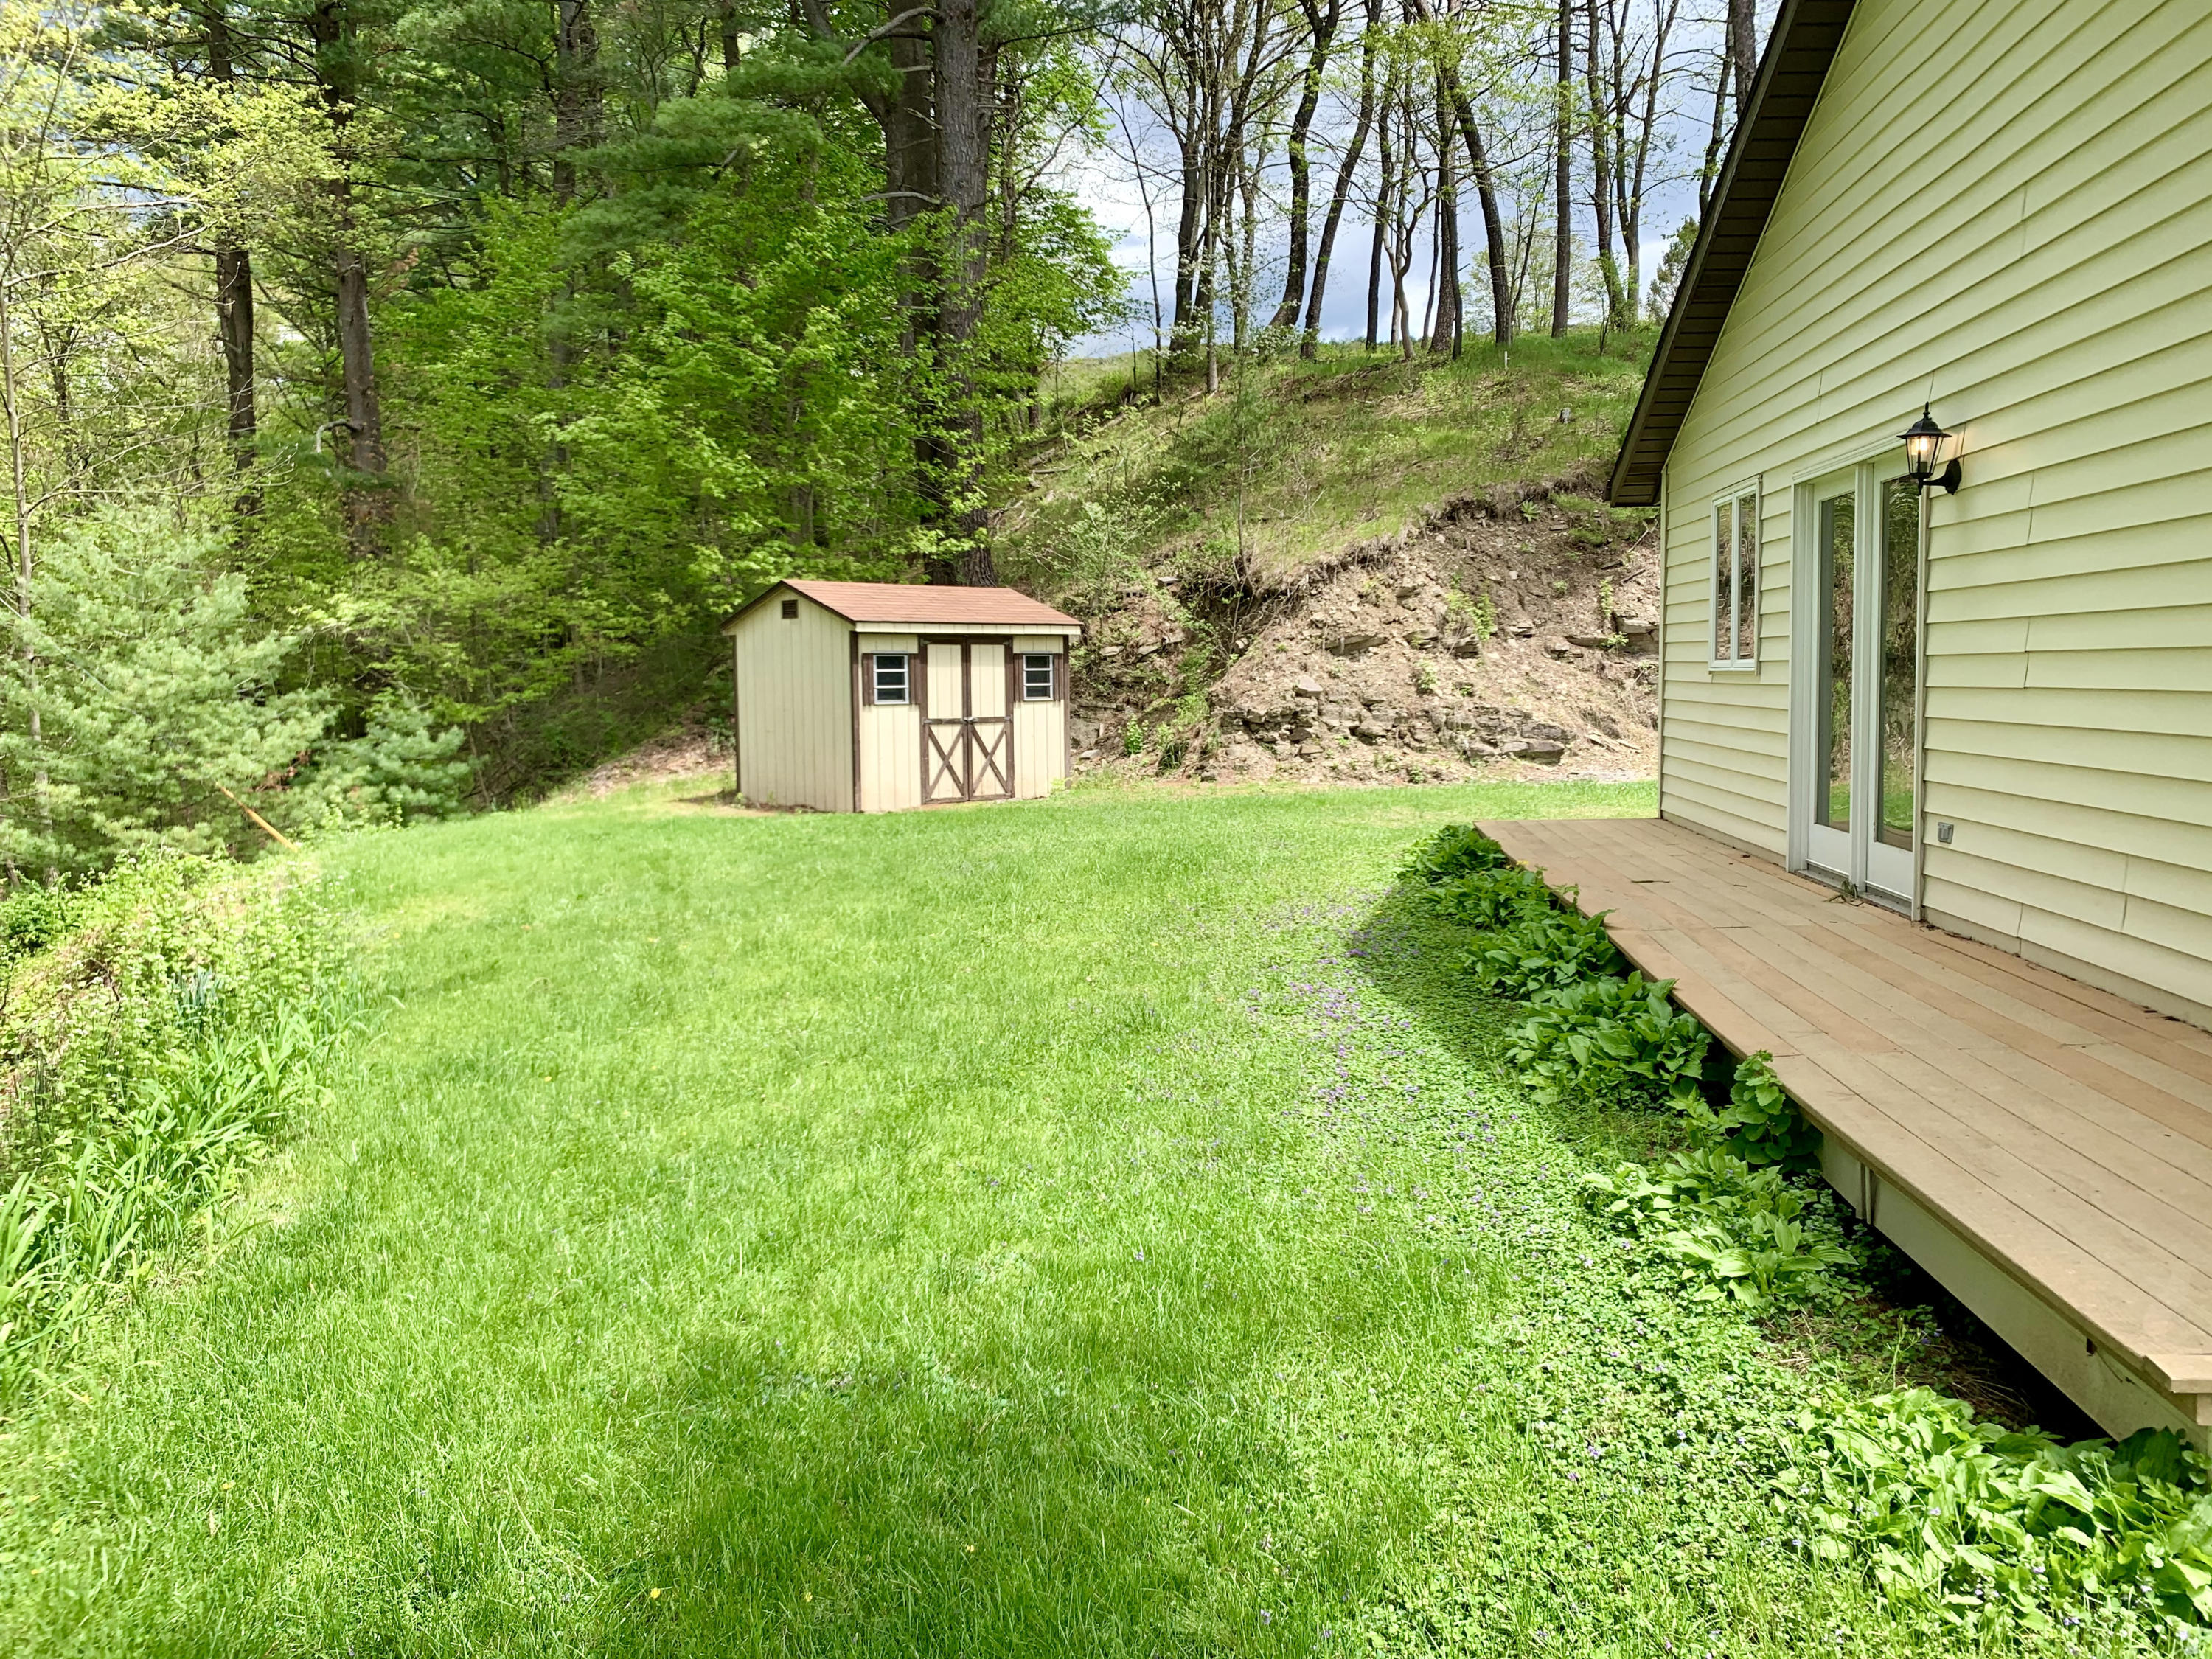 2768 LYCOMING CREEK ROAD, Williamsport, PA 17701, 3 Bedrooms Bedrooms, ,2.5 BathroomsBathrooms,Residential,For sale,LYCOMING CREEK,WB-92511